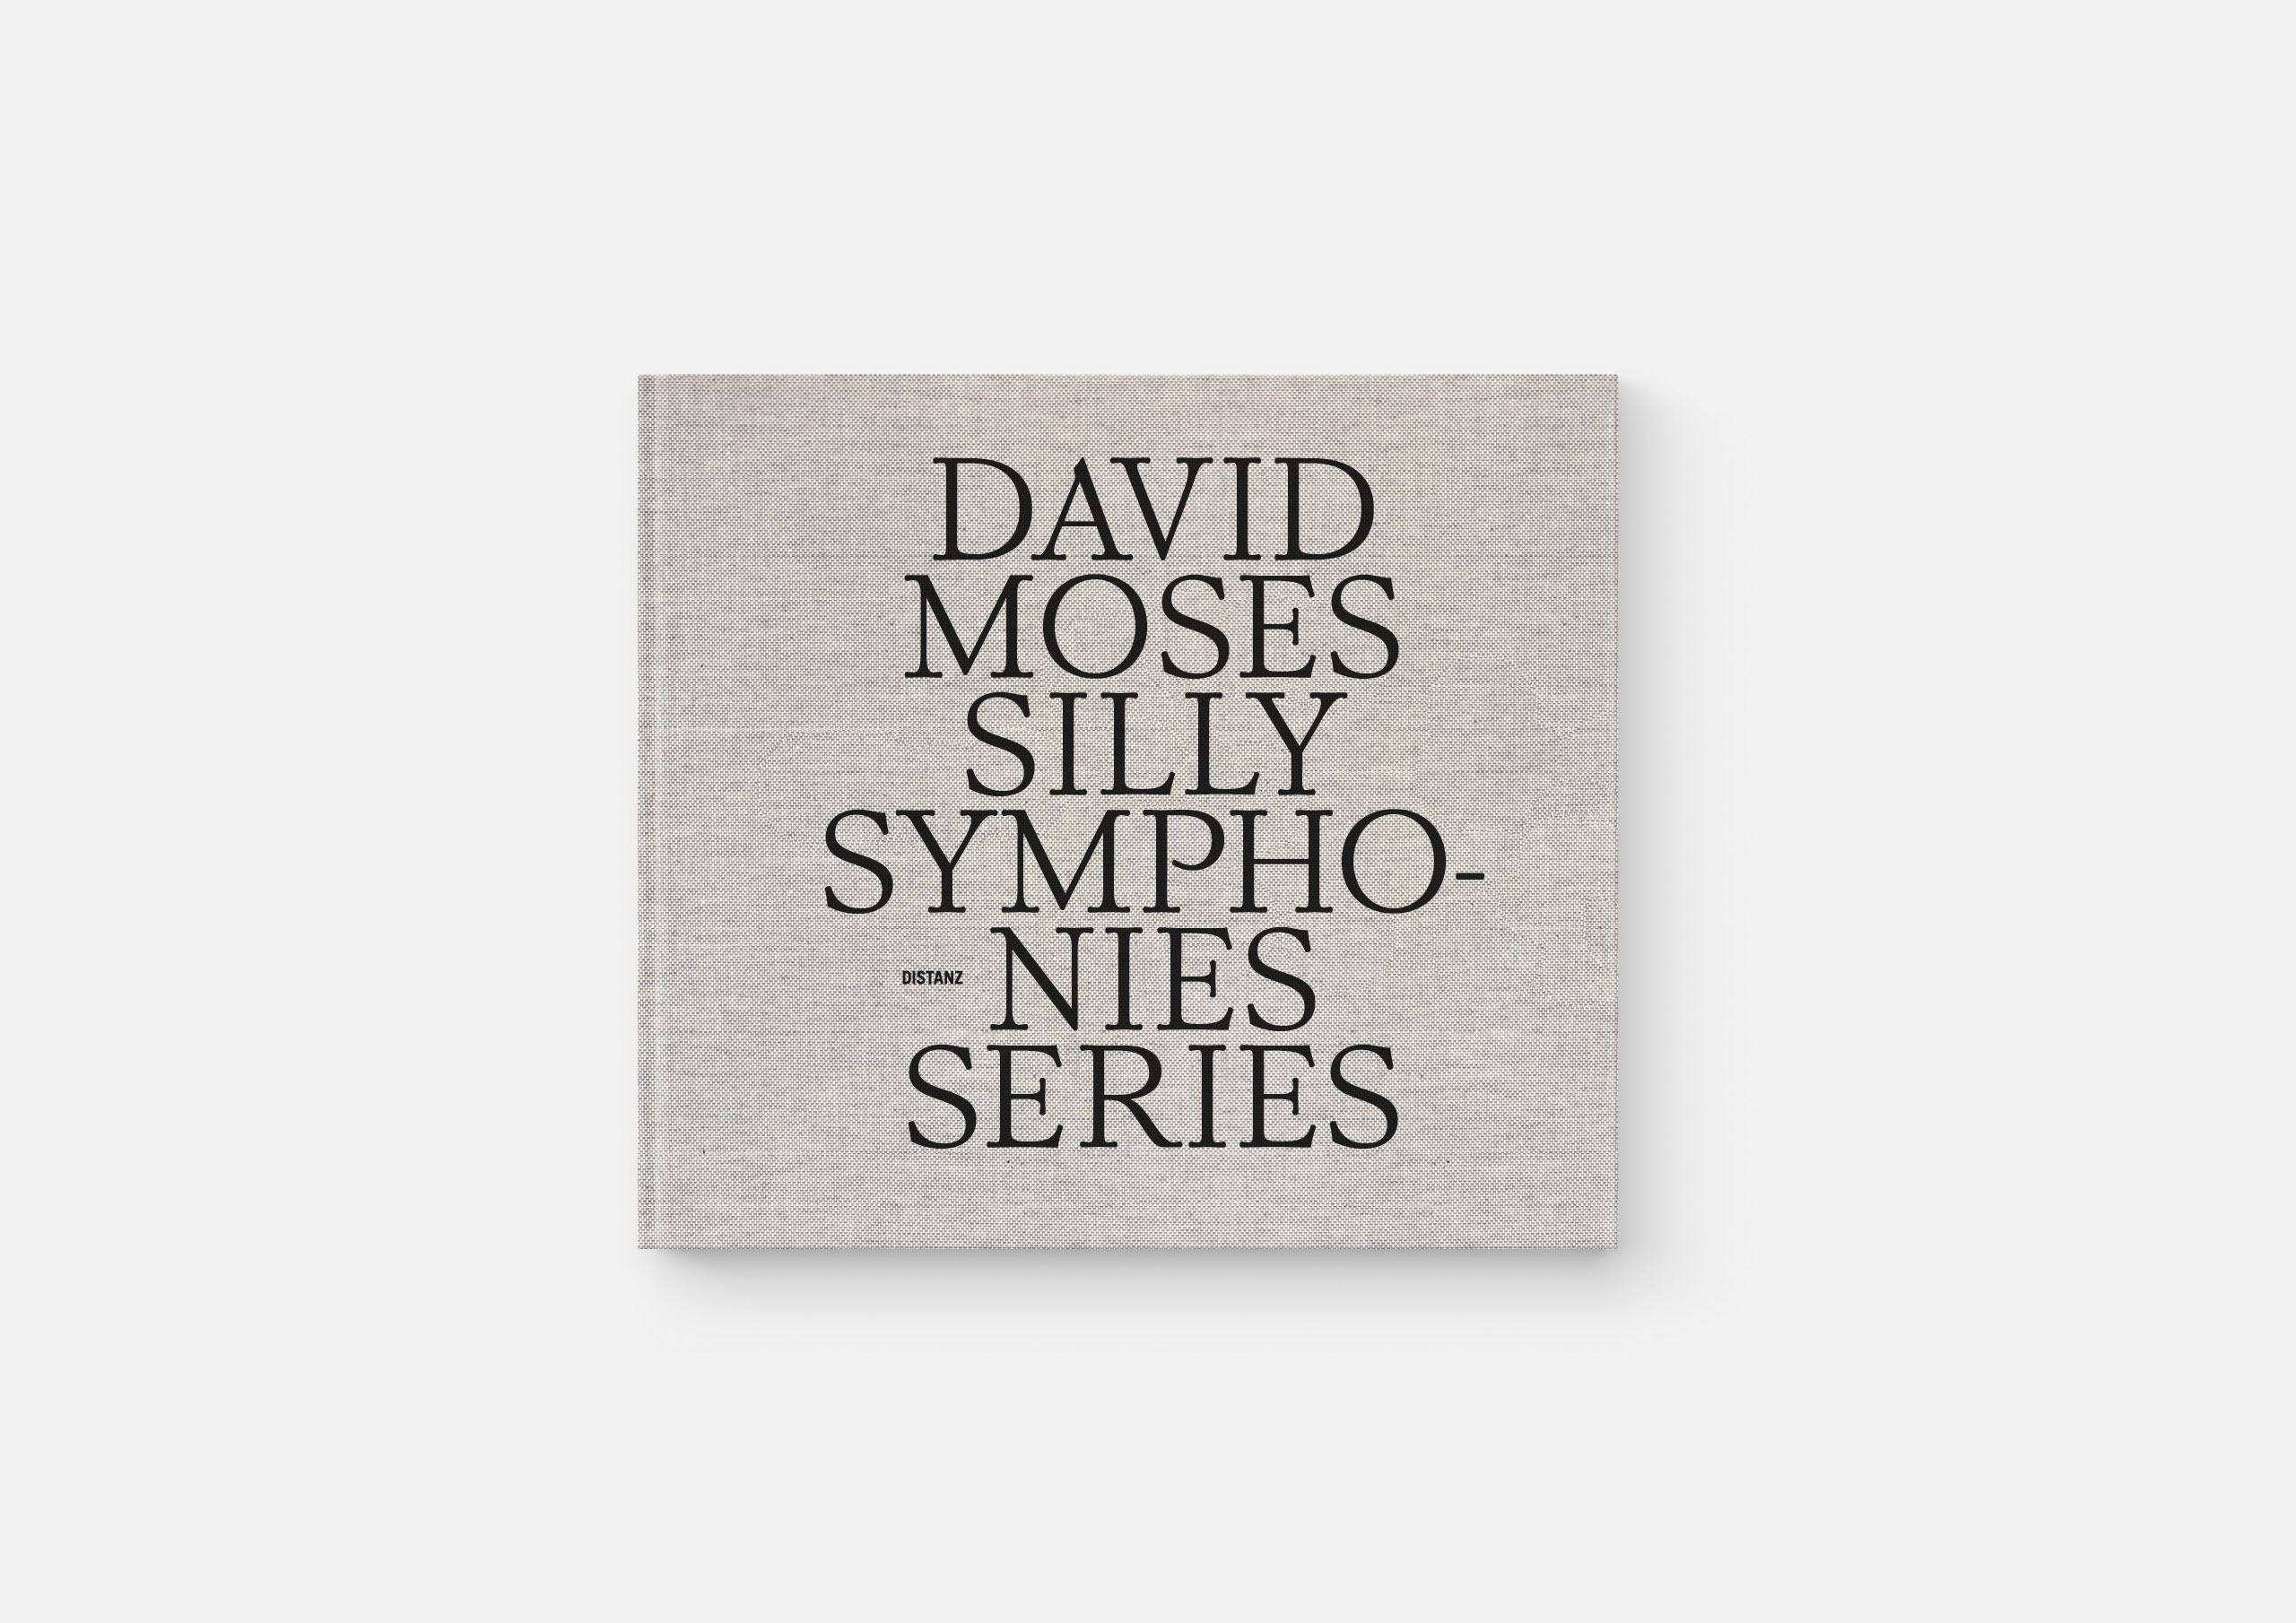 https://neuegestaltung.de/media/pages/clients/david-moses/29ddd3bead-1619427901/dm_silly_01_cover.jpg